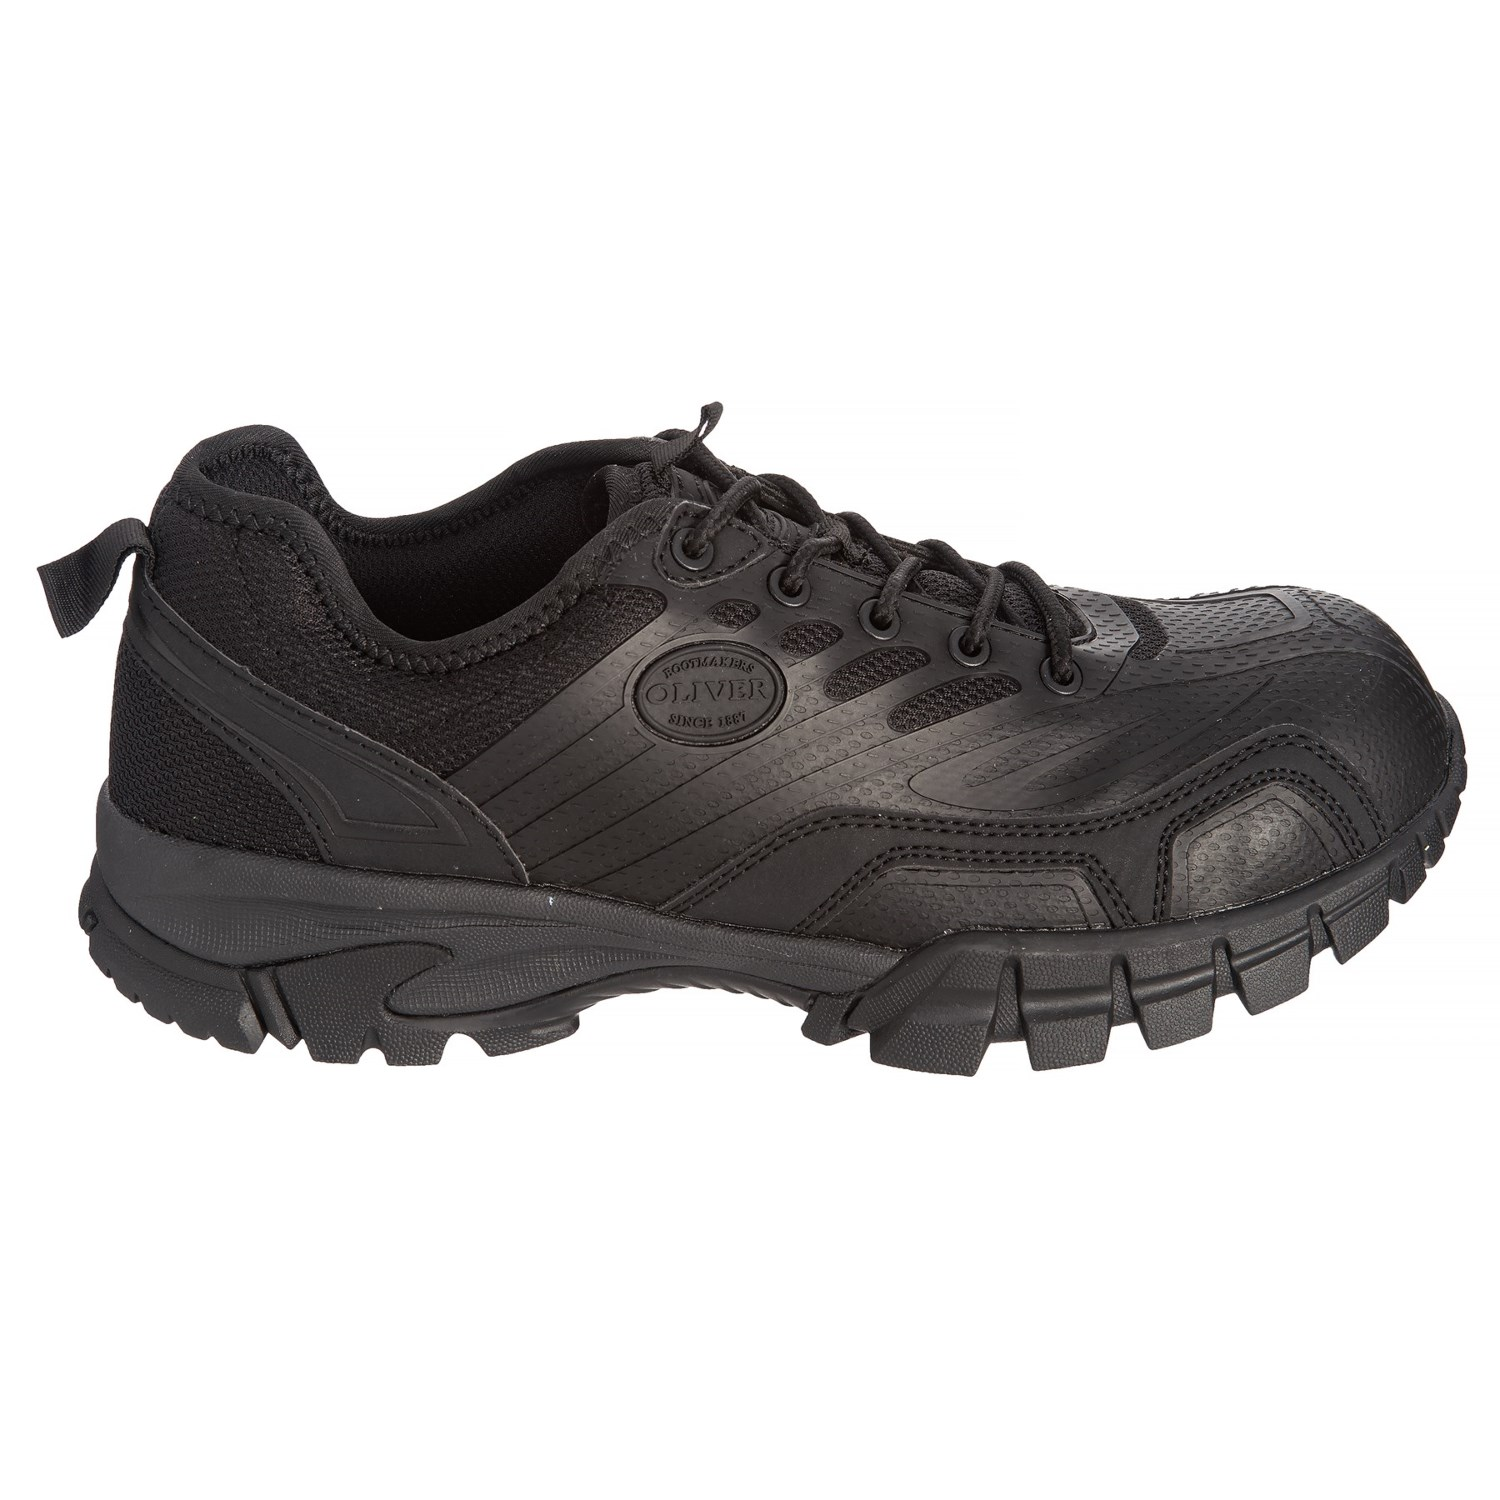 d63b2dd3b8f Oliver Circuit Series Athletic Work Shoes - Composite Safety Toe (For Men)